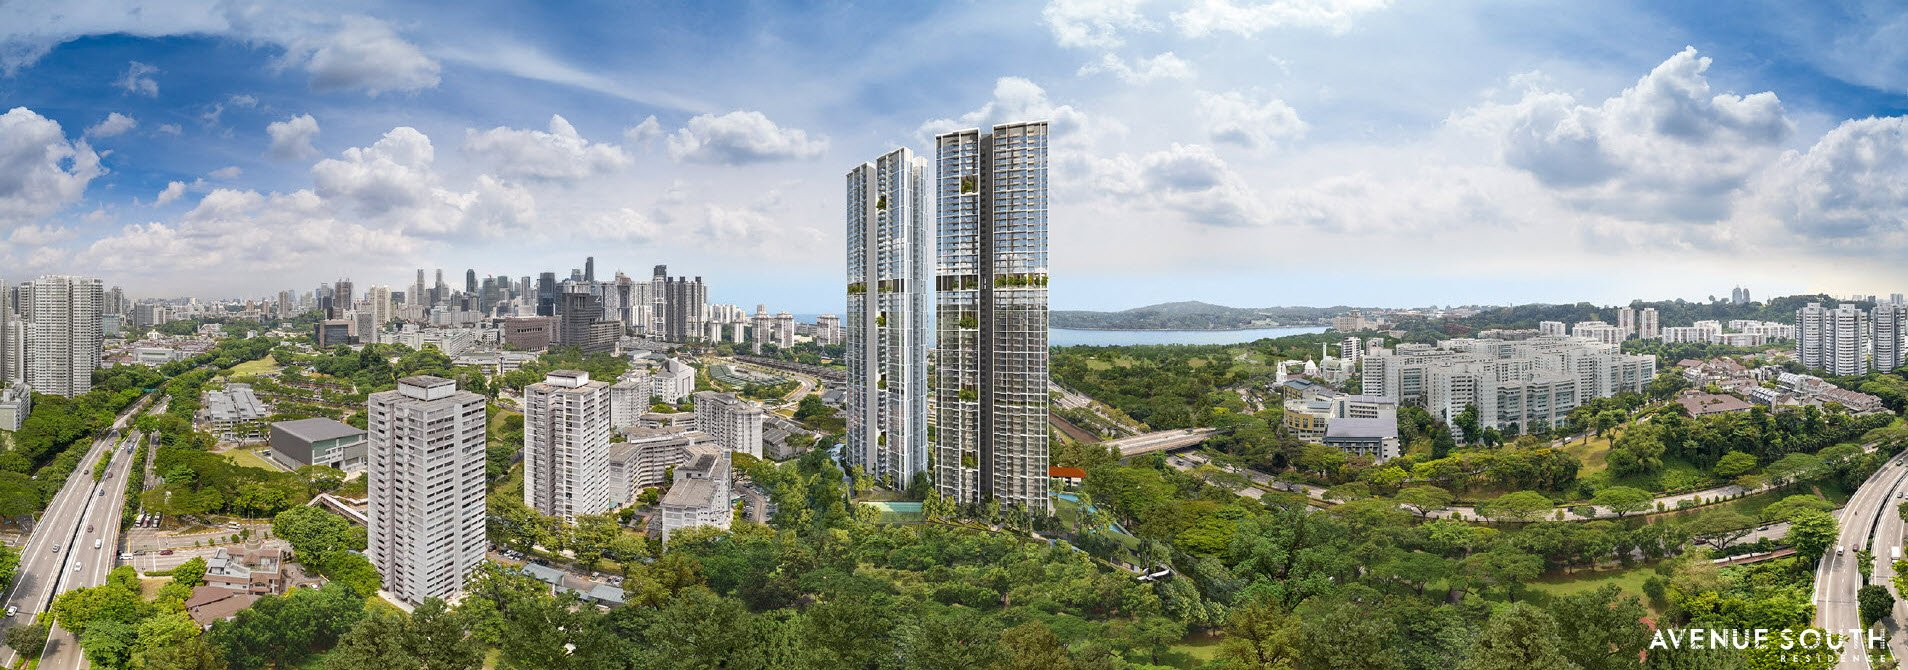 Rendering of Avenue South Residence Silat Avenue Condo  against the Singapore skyline